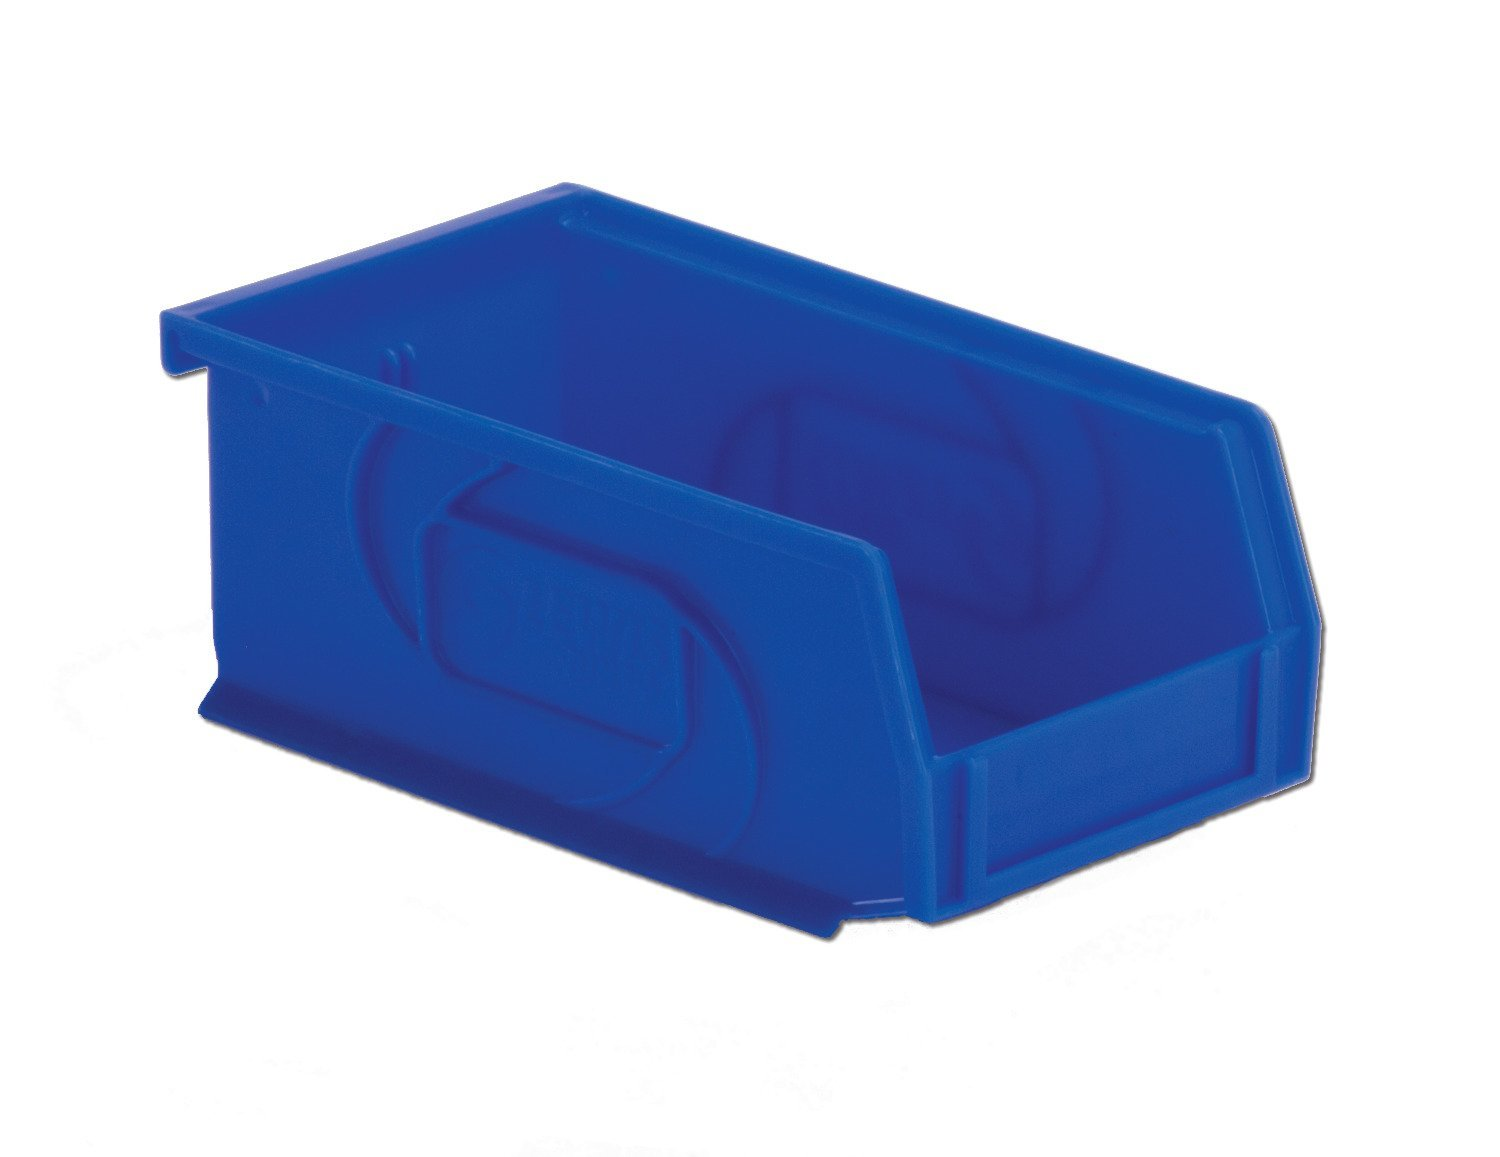 PB1816-11 | 18x16x11 Parts Bin | Pack of 3